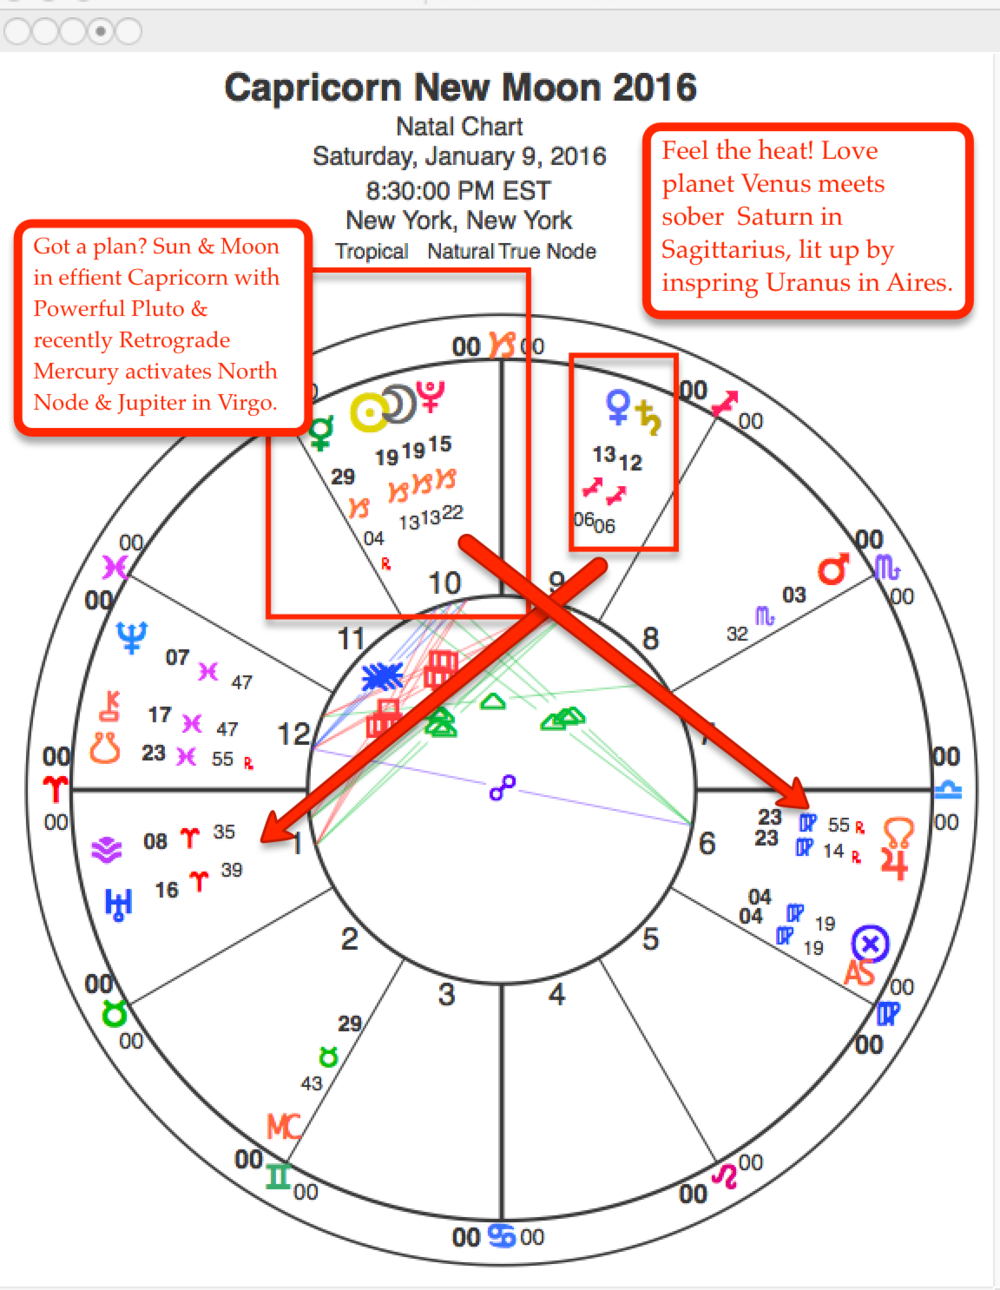 "Plan carefully and take your time: Capricorn New Moon is January 9, 2016. Learn how to make 2016 your best year yet at the new on-line program ""Secrets to 2016"". Registration is open now at Astrology Hub. Details here."